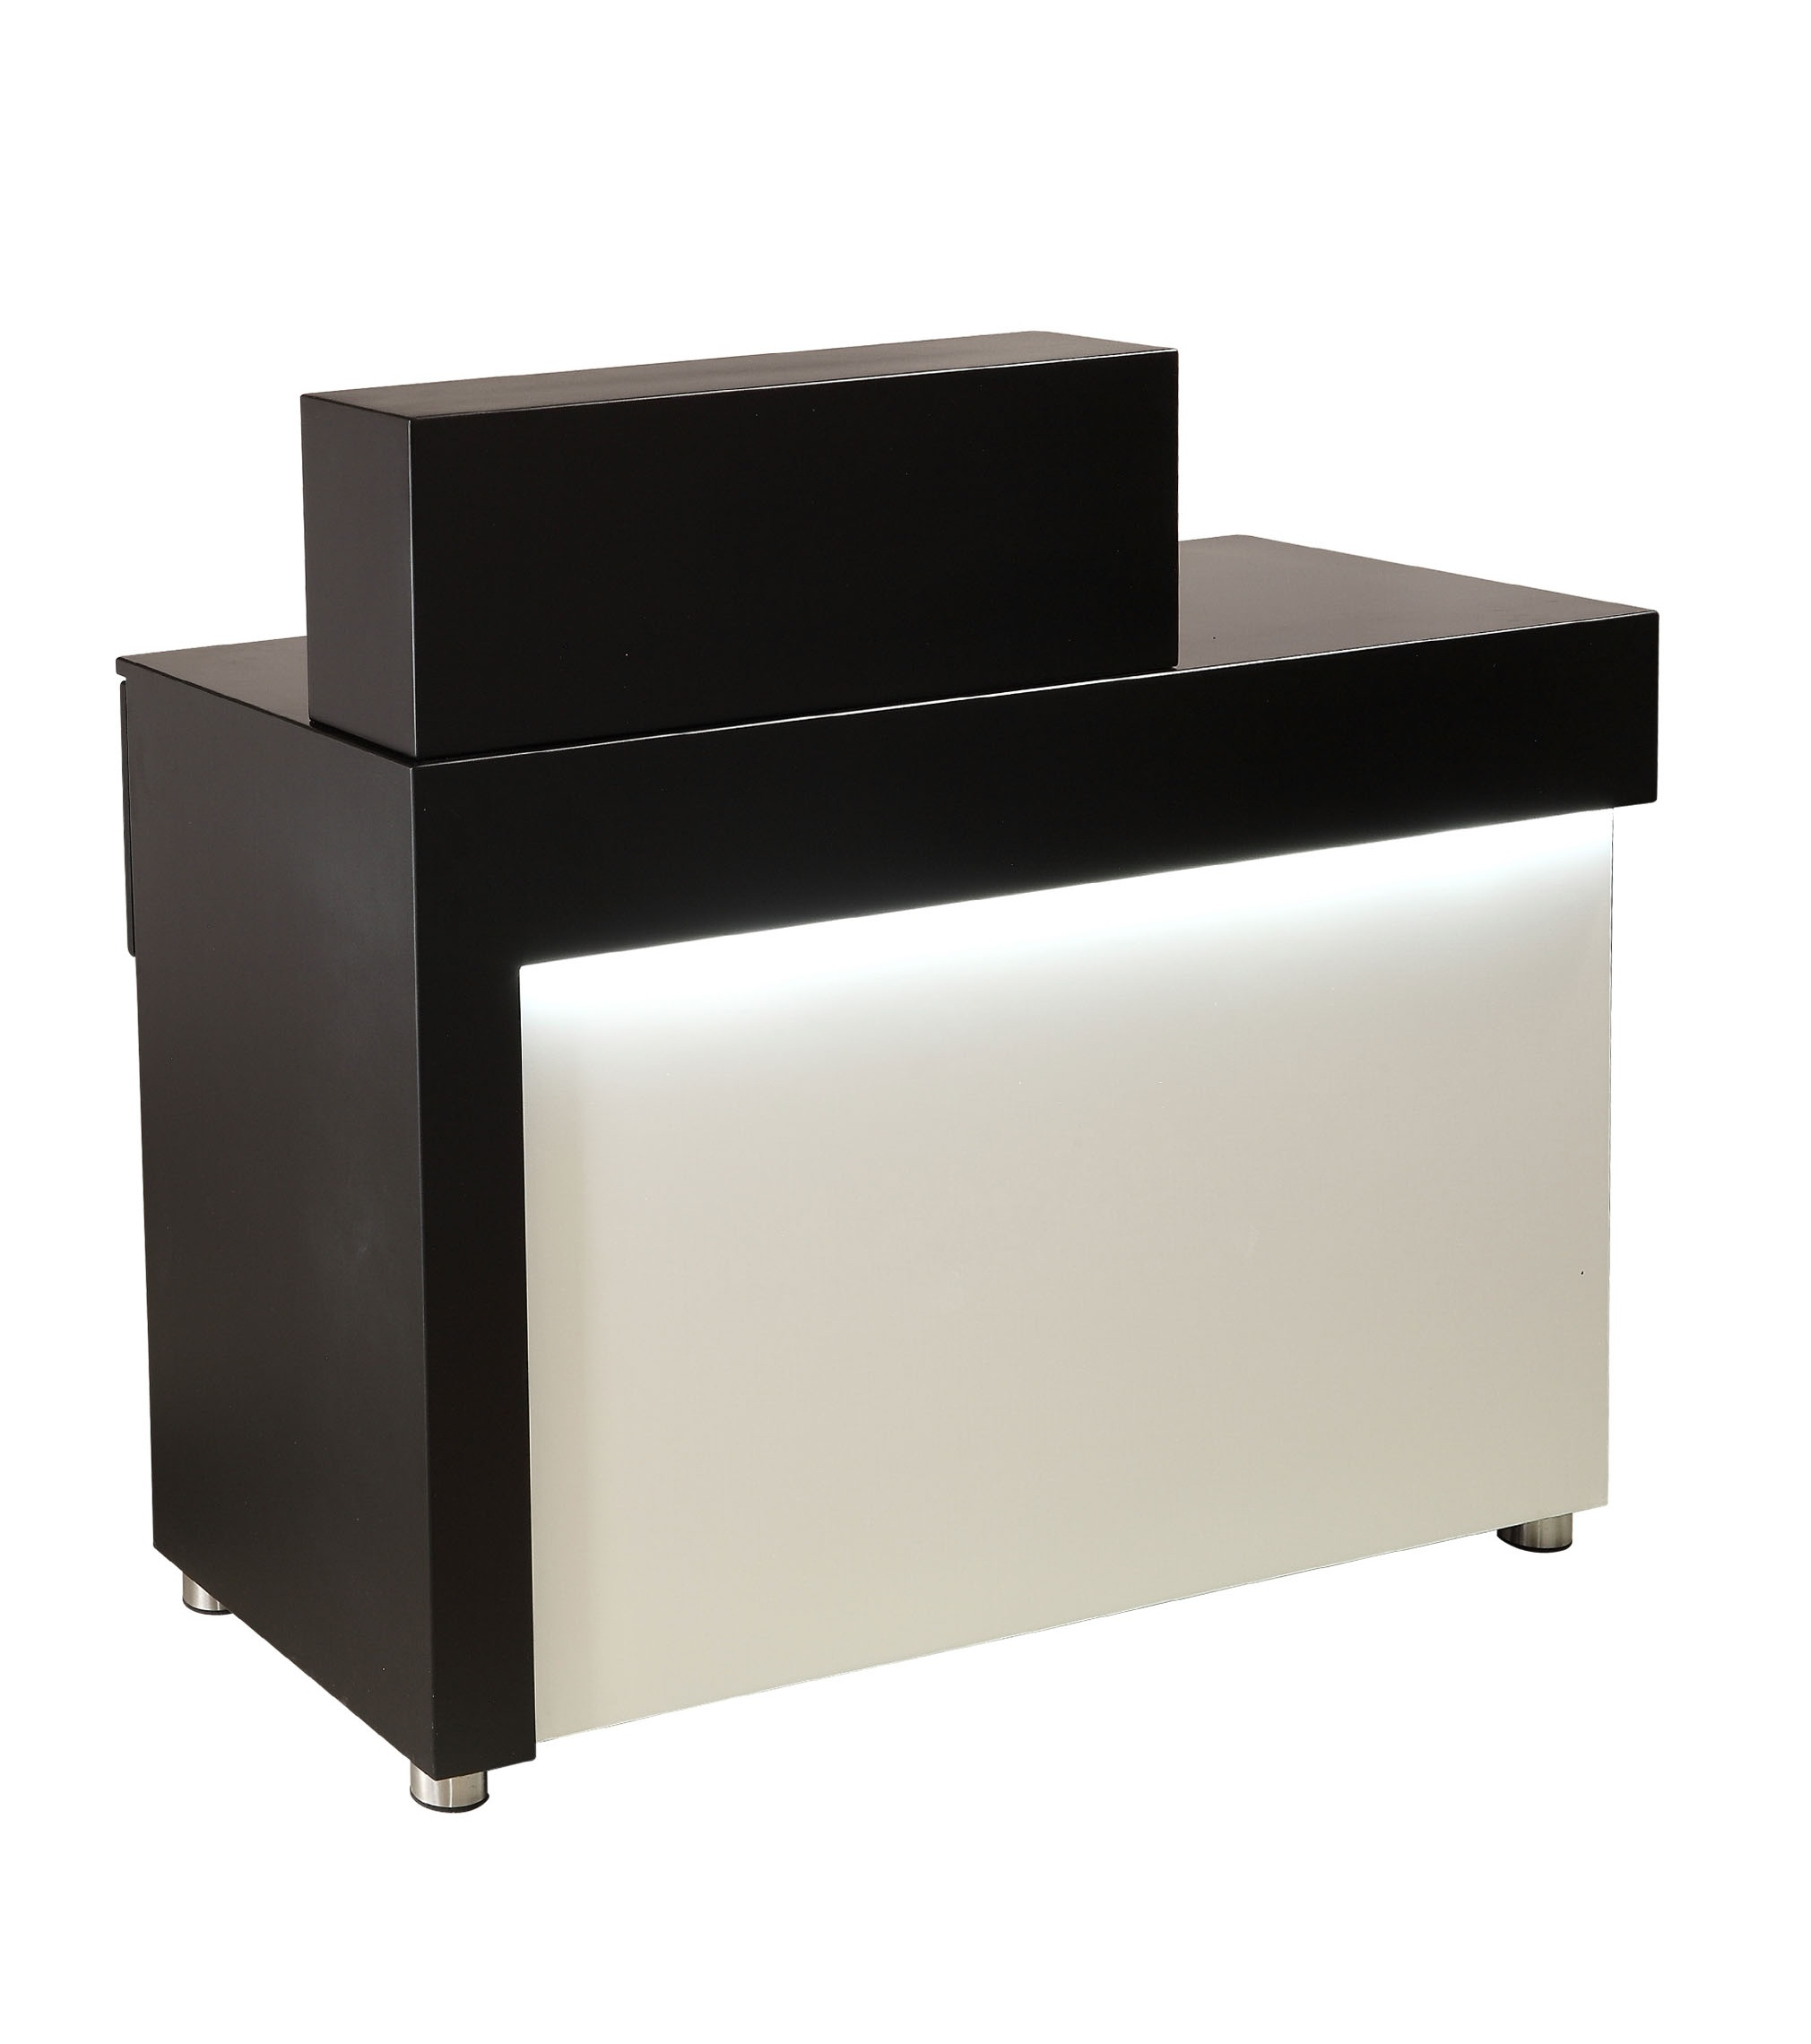 Black/White Brooklyn Salon Reception Desk by SEC